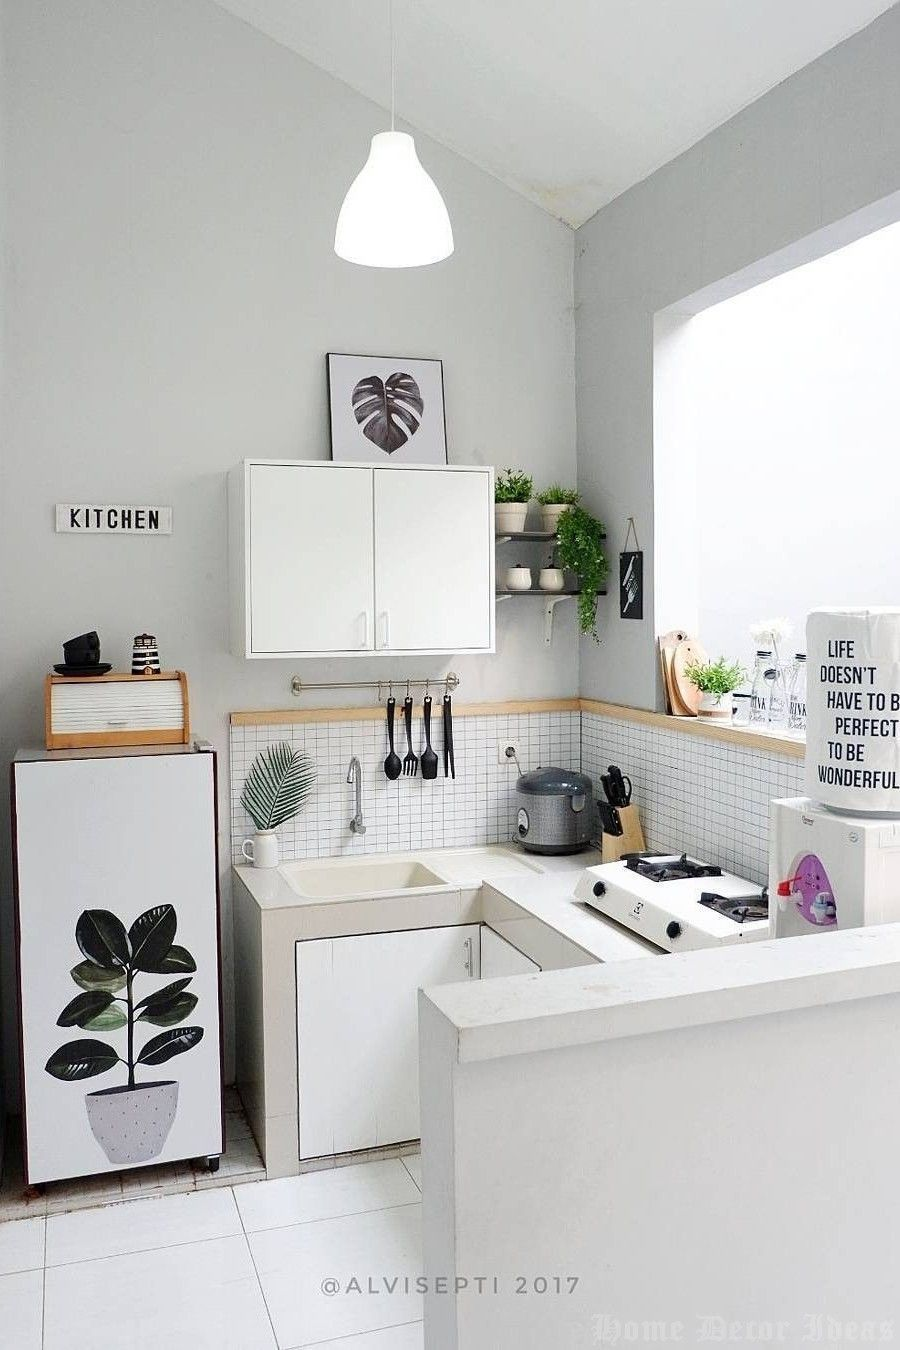 Home Decorating Ideas On A Budget A13 In 2020 Kitchen Design Small Home Decor Kitchen Small Kitchen Decor